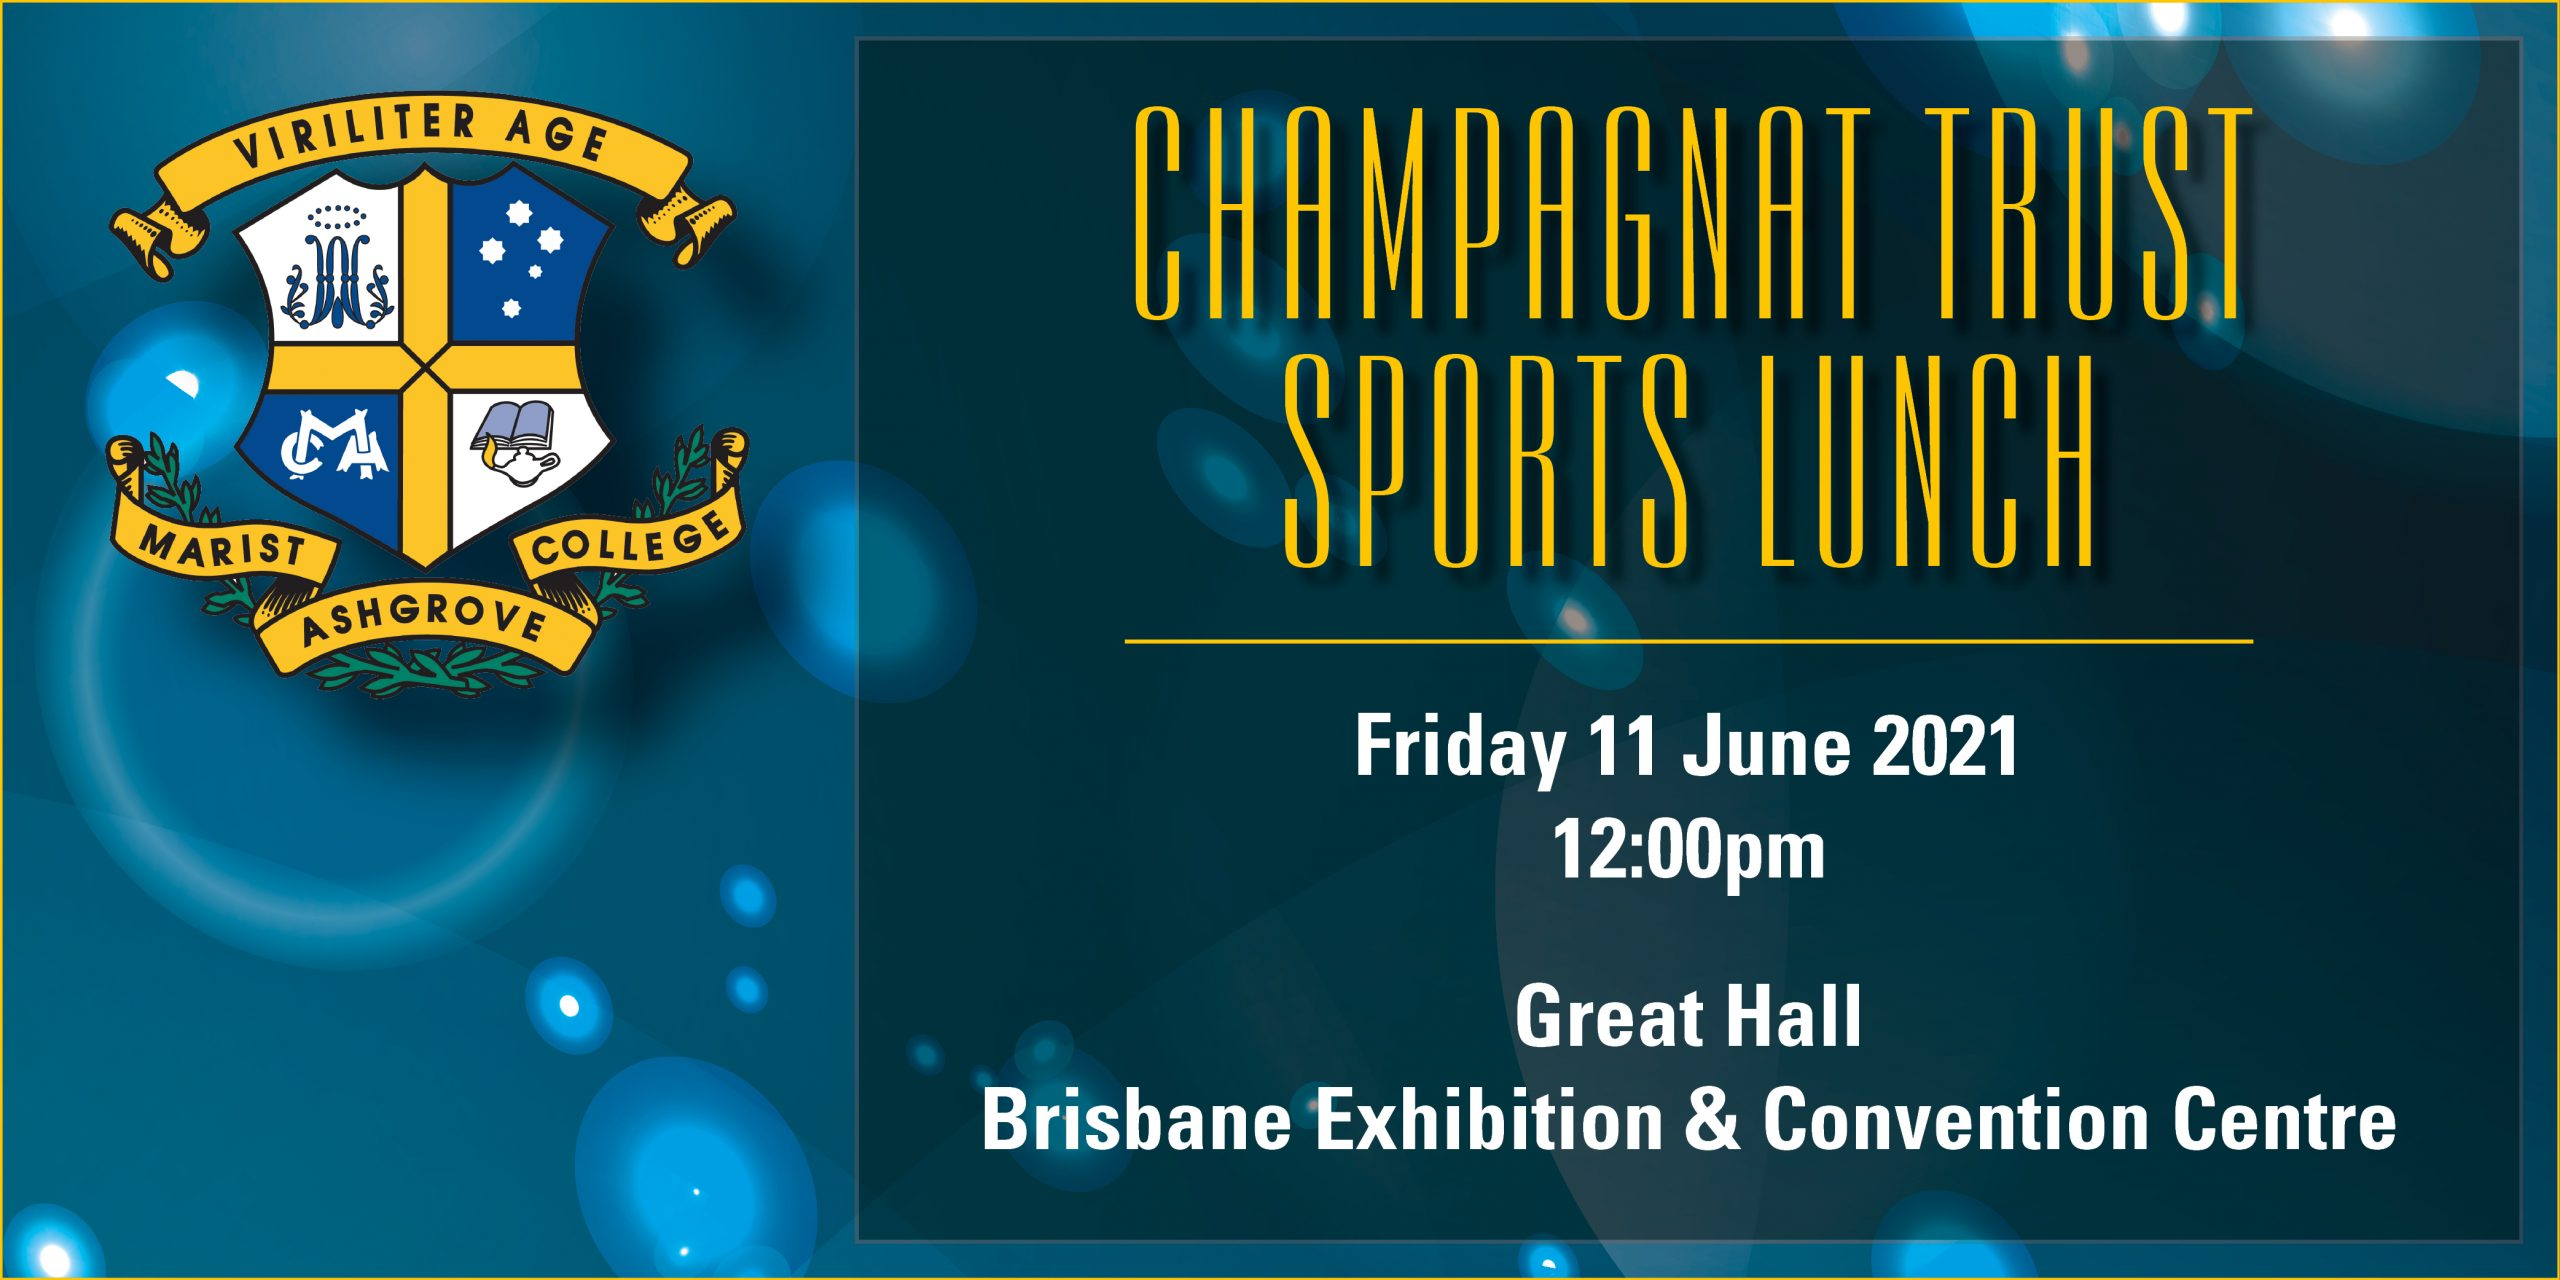 Champagnat Trust Sports Lunch | Friday 11 June 2021